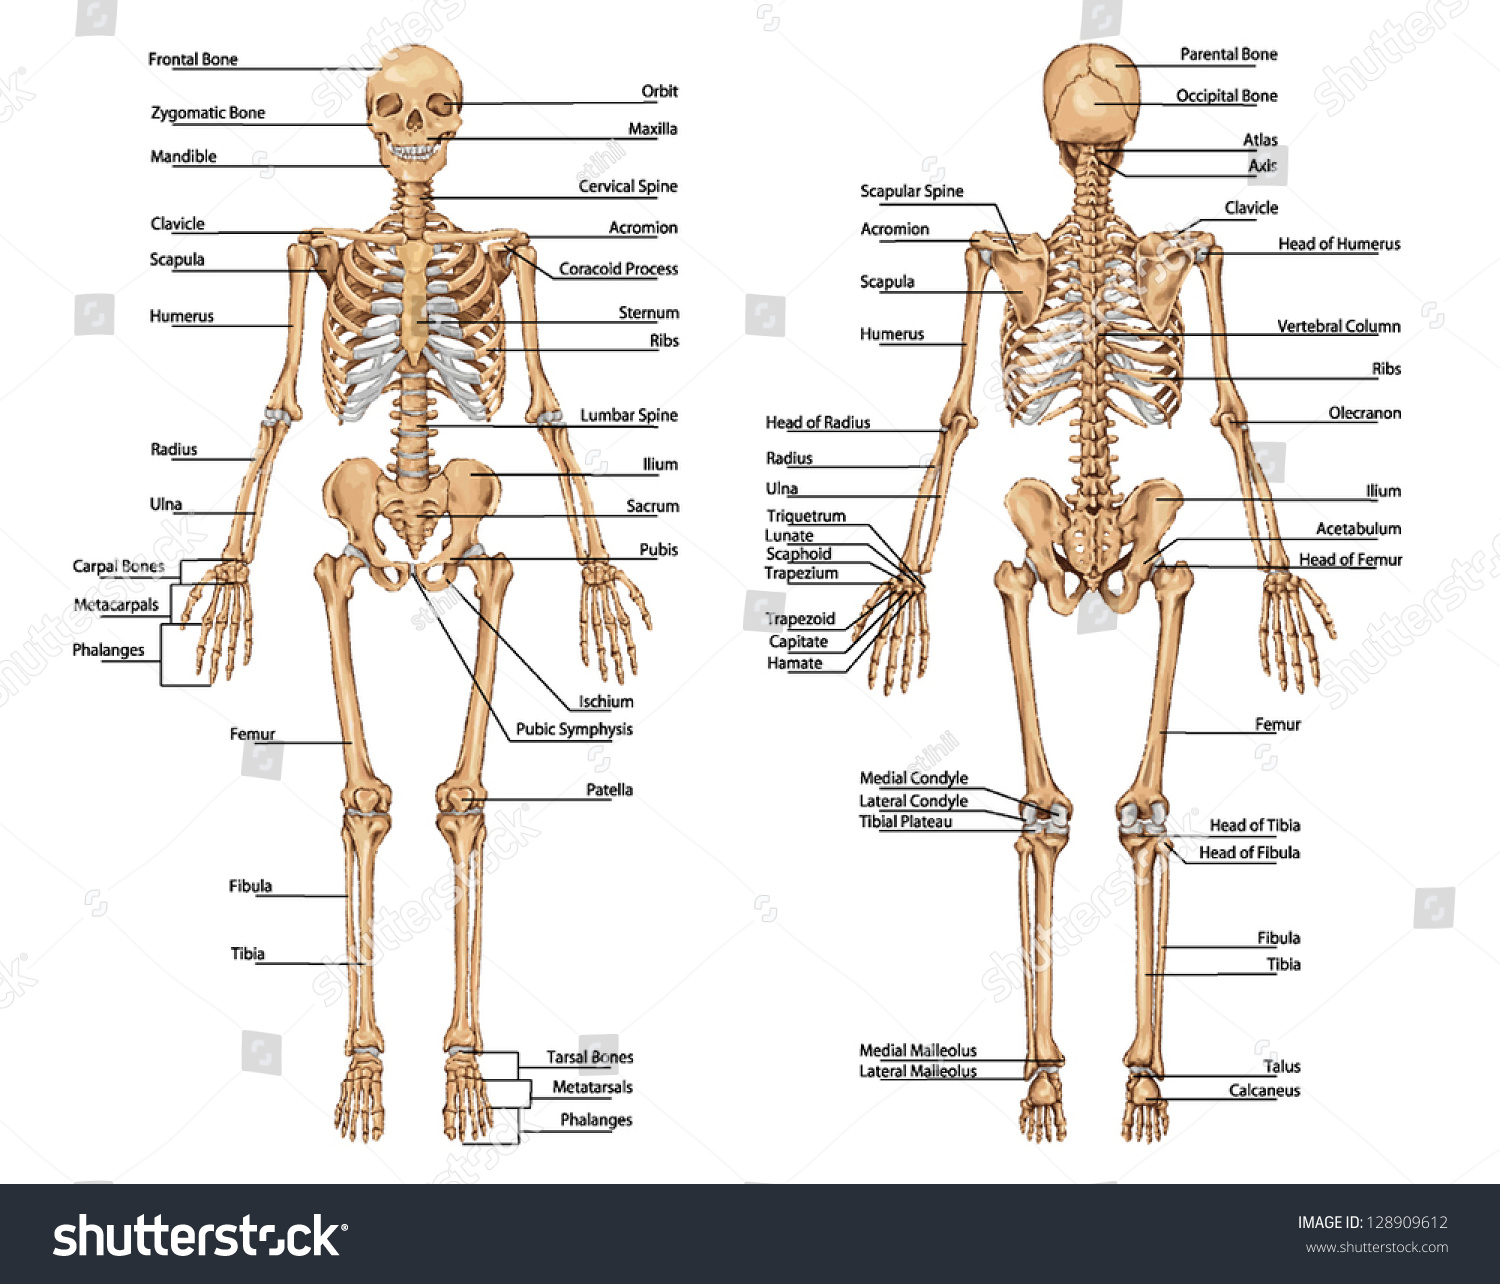 anterior and posterior anatomy choice image - learn human anatomy, Skeleton